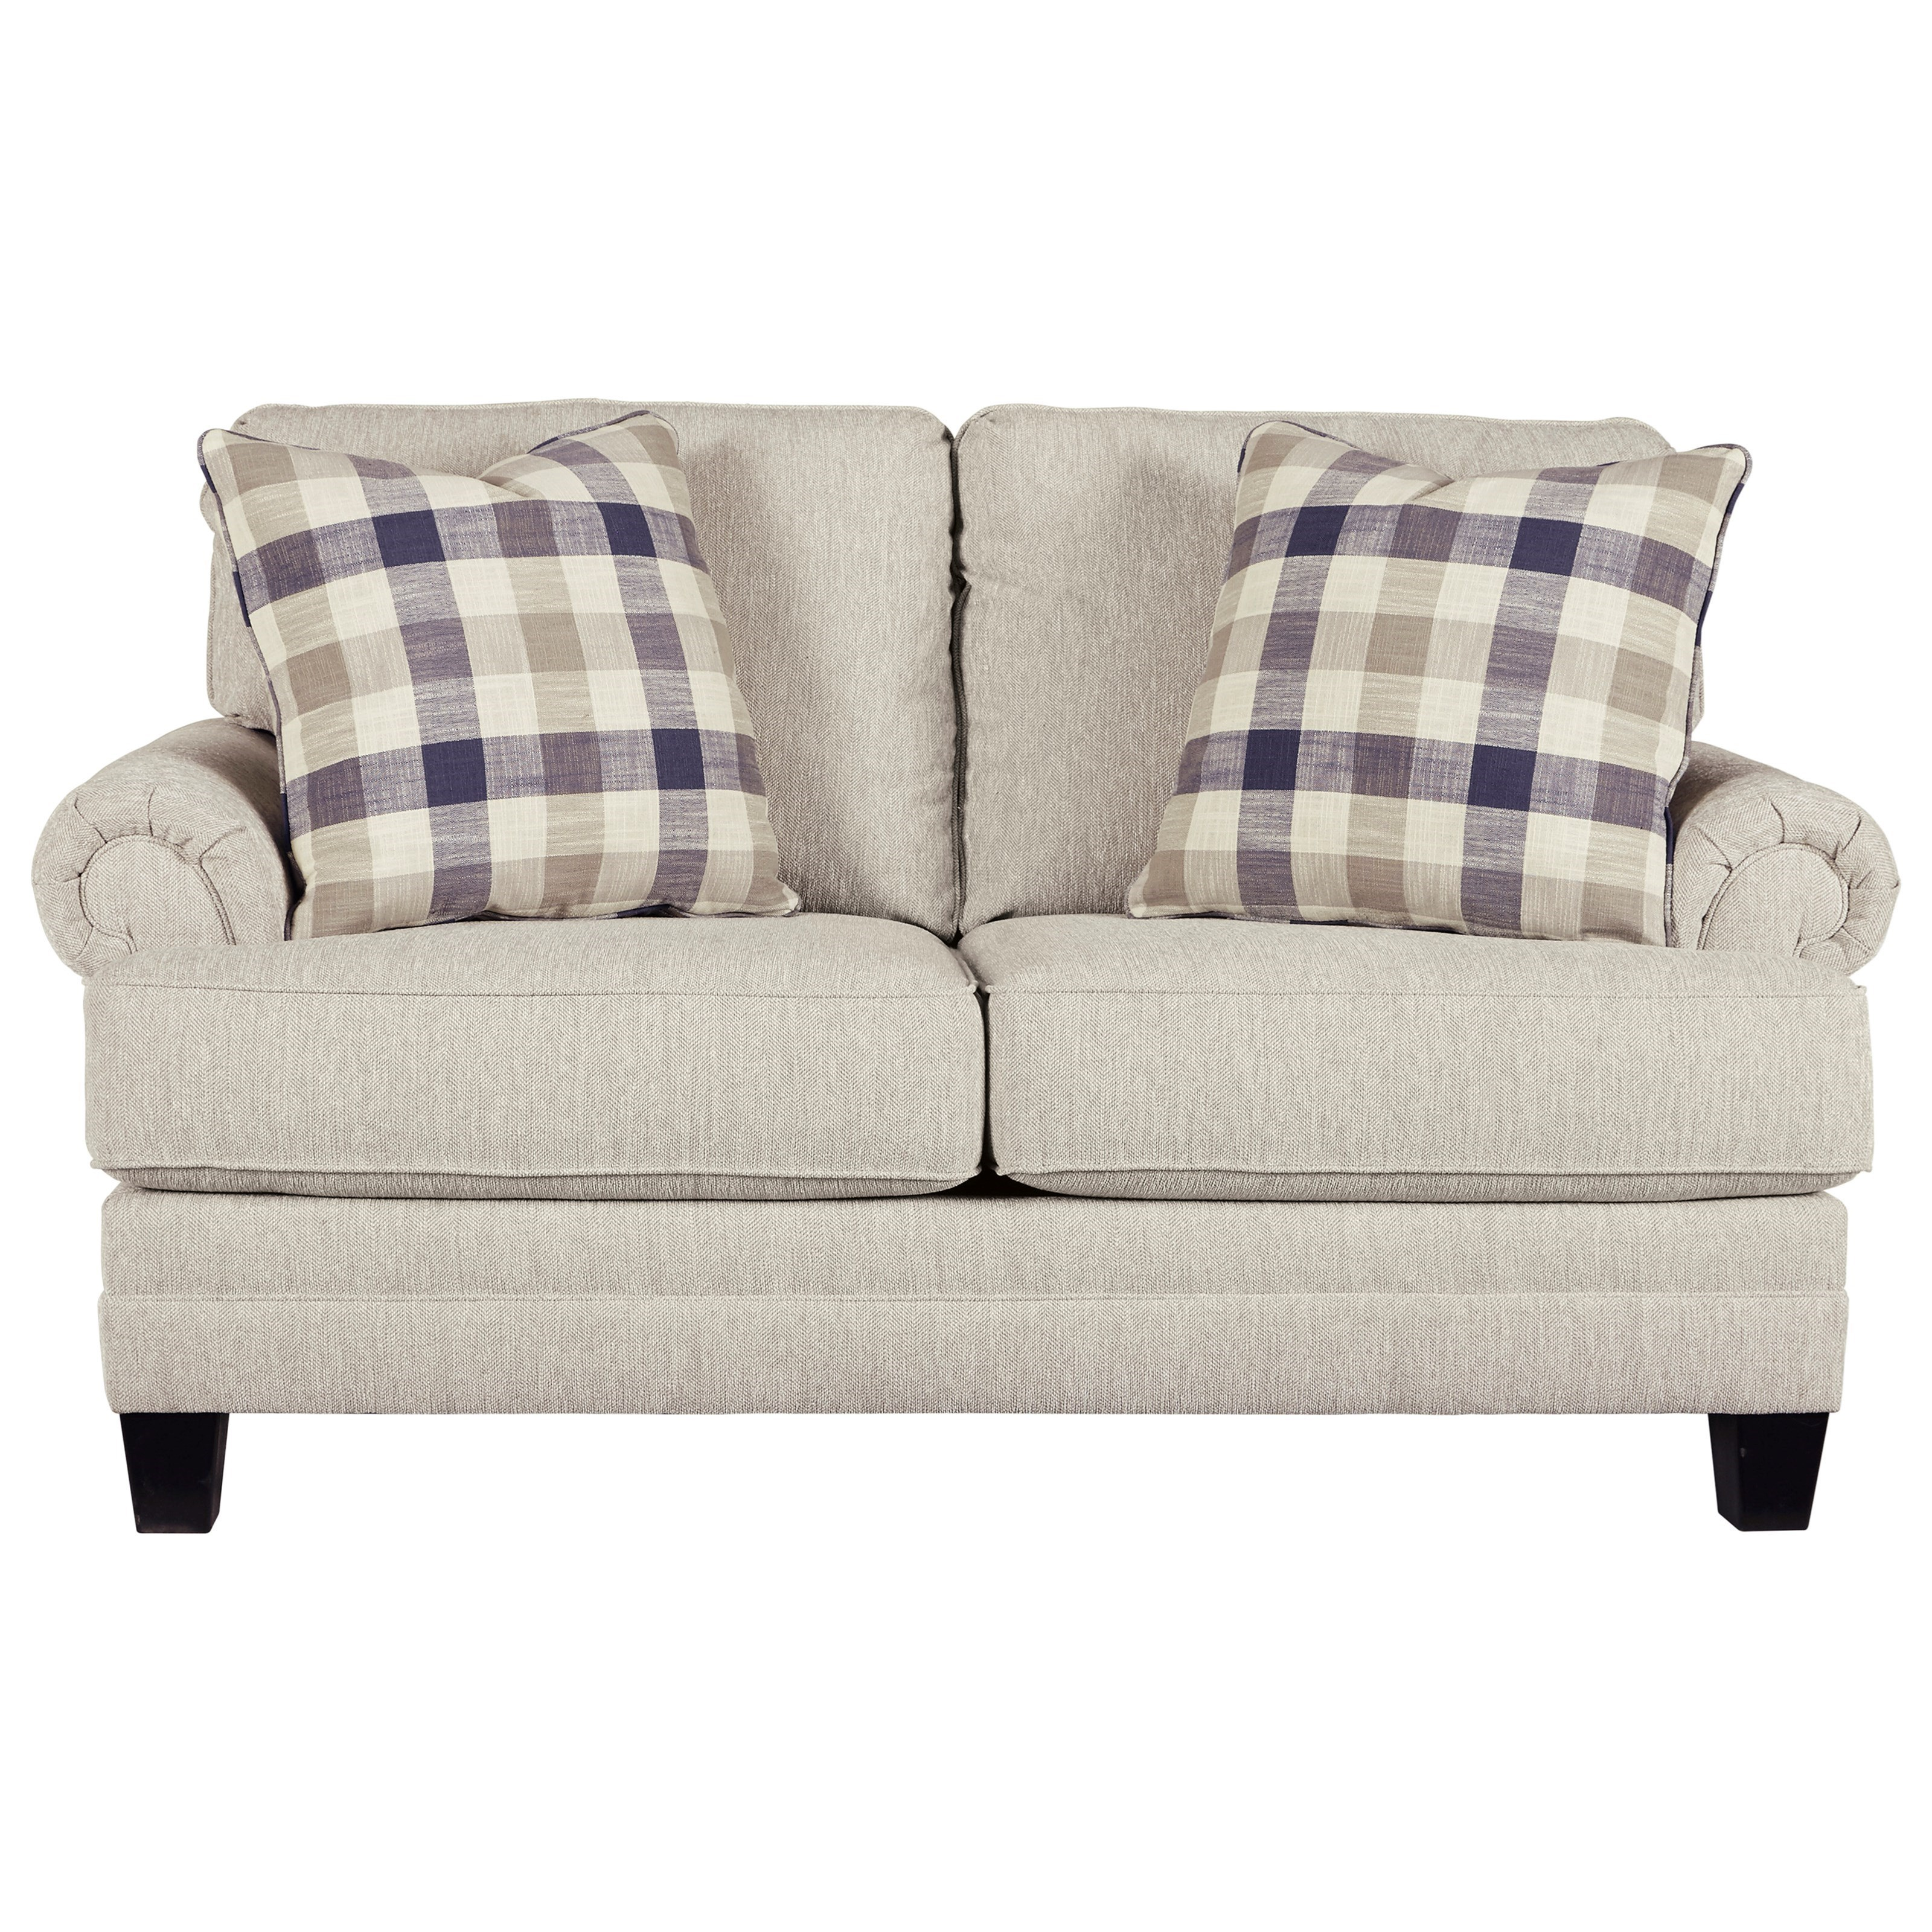 Meggett Loveseat by Benchcraft at Northeast Factory Direct